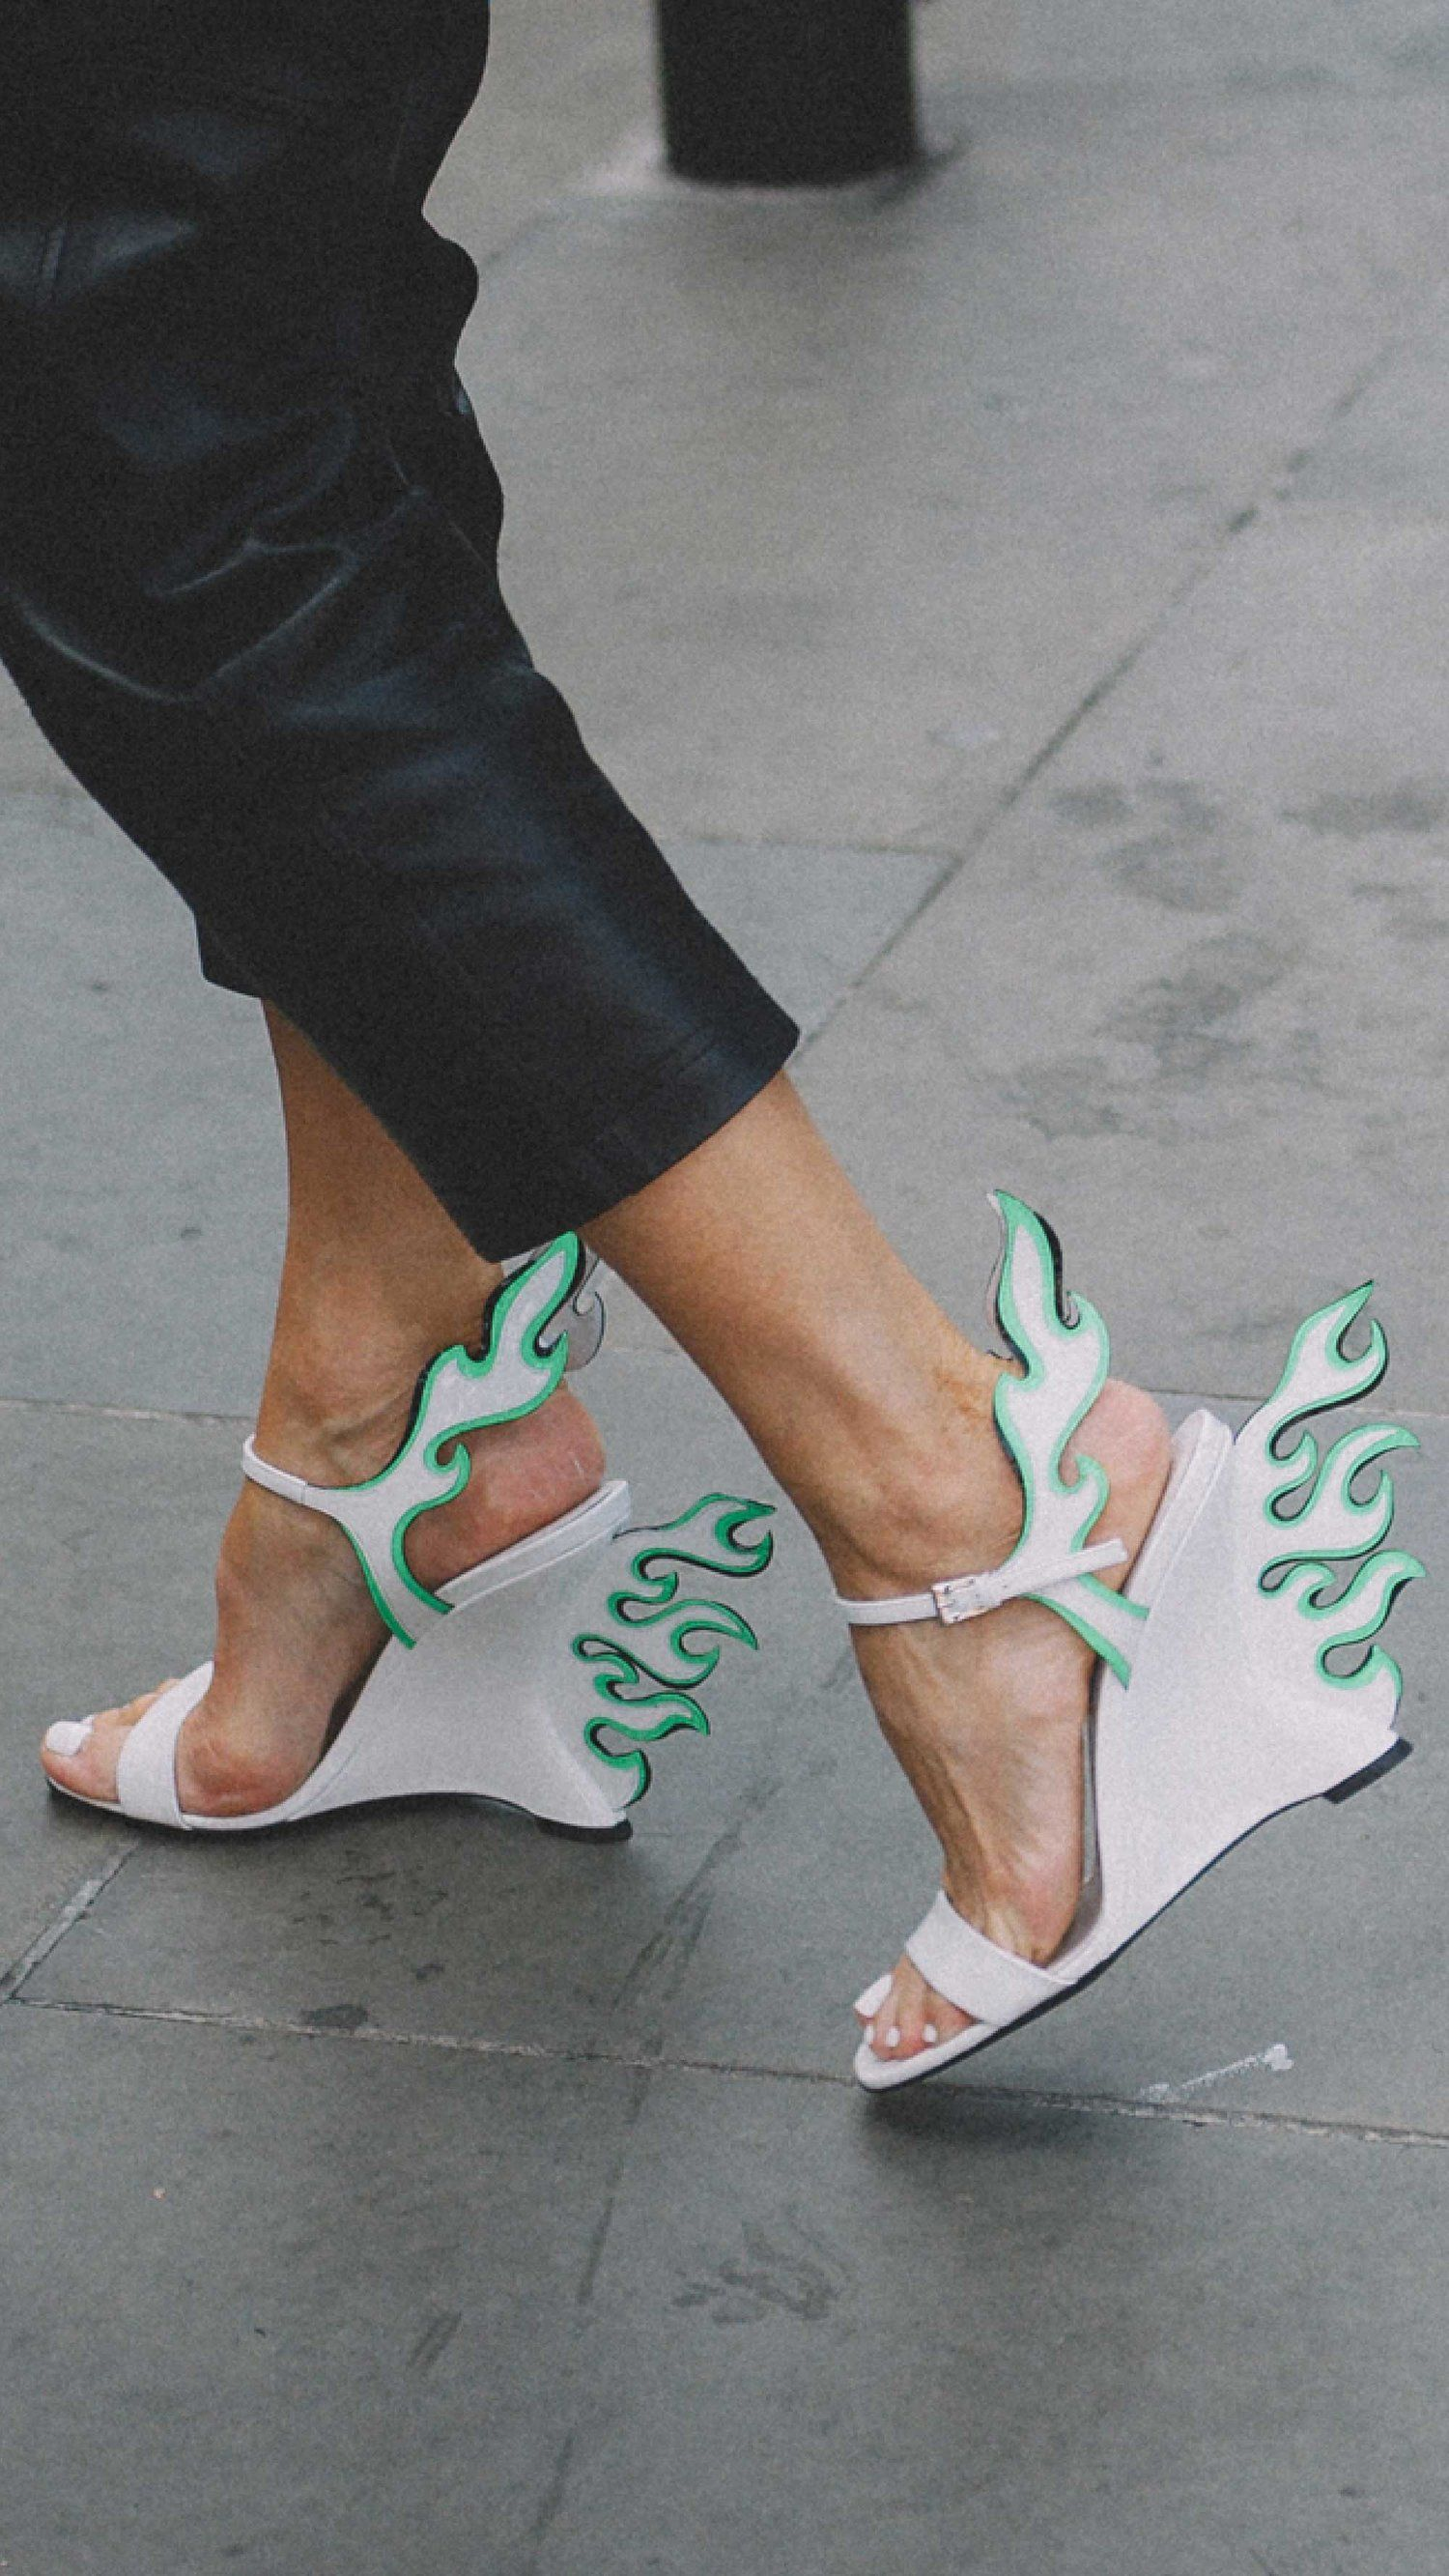 f59ed930a2e Prada Flame Patent Leather Wedge Sandals London Fashion Week Street Style  Photos Spring Summer 2018 Outfit Inspiration